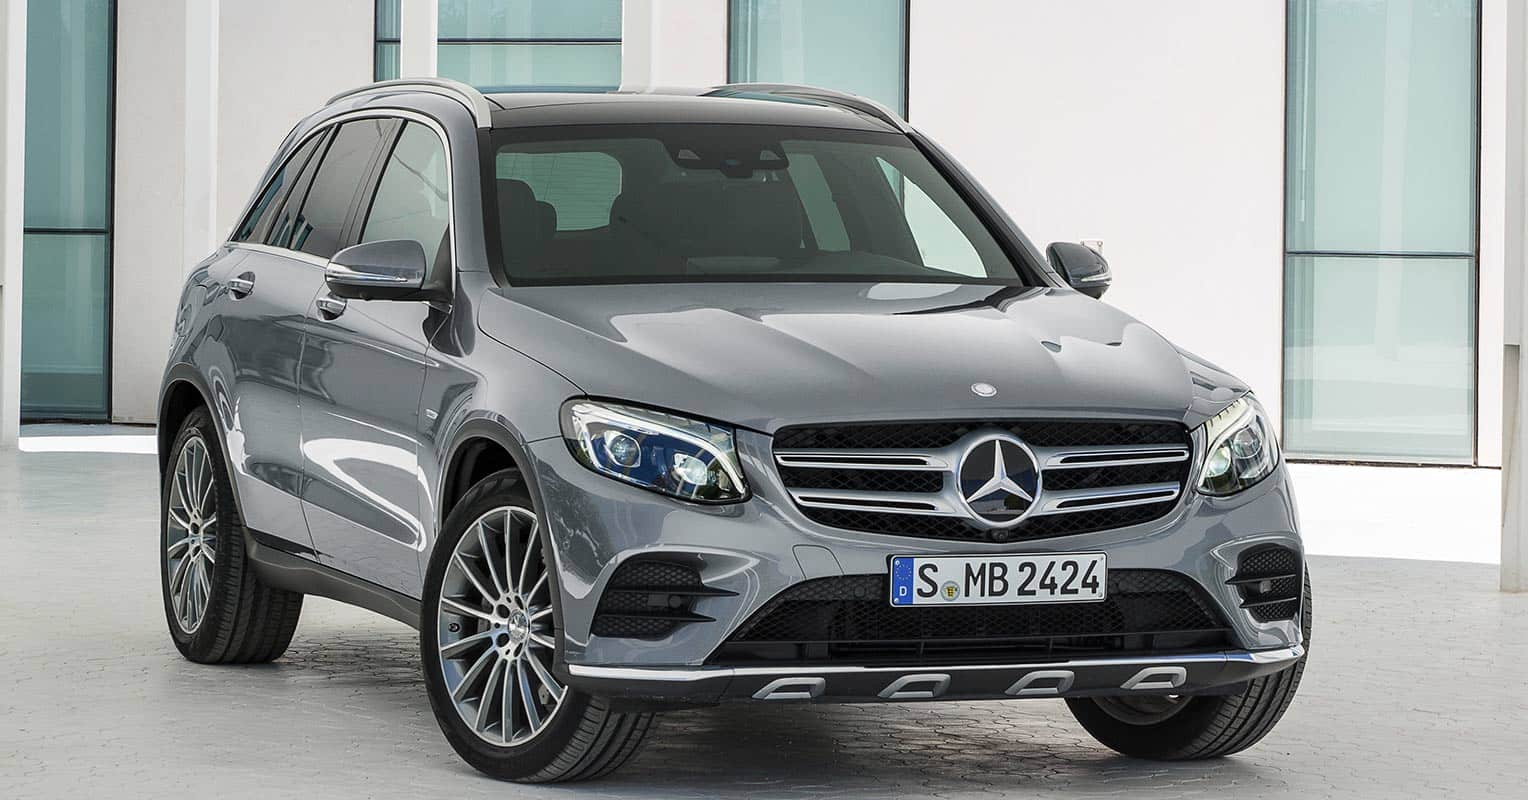 Mercedes-Benz Clase GLC frontal